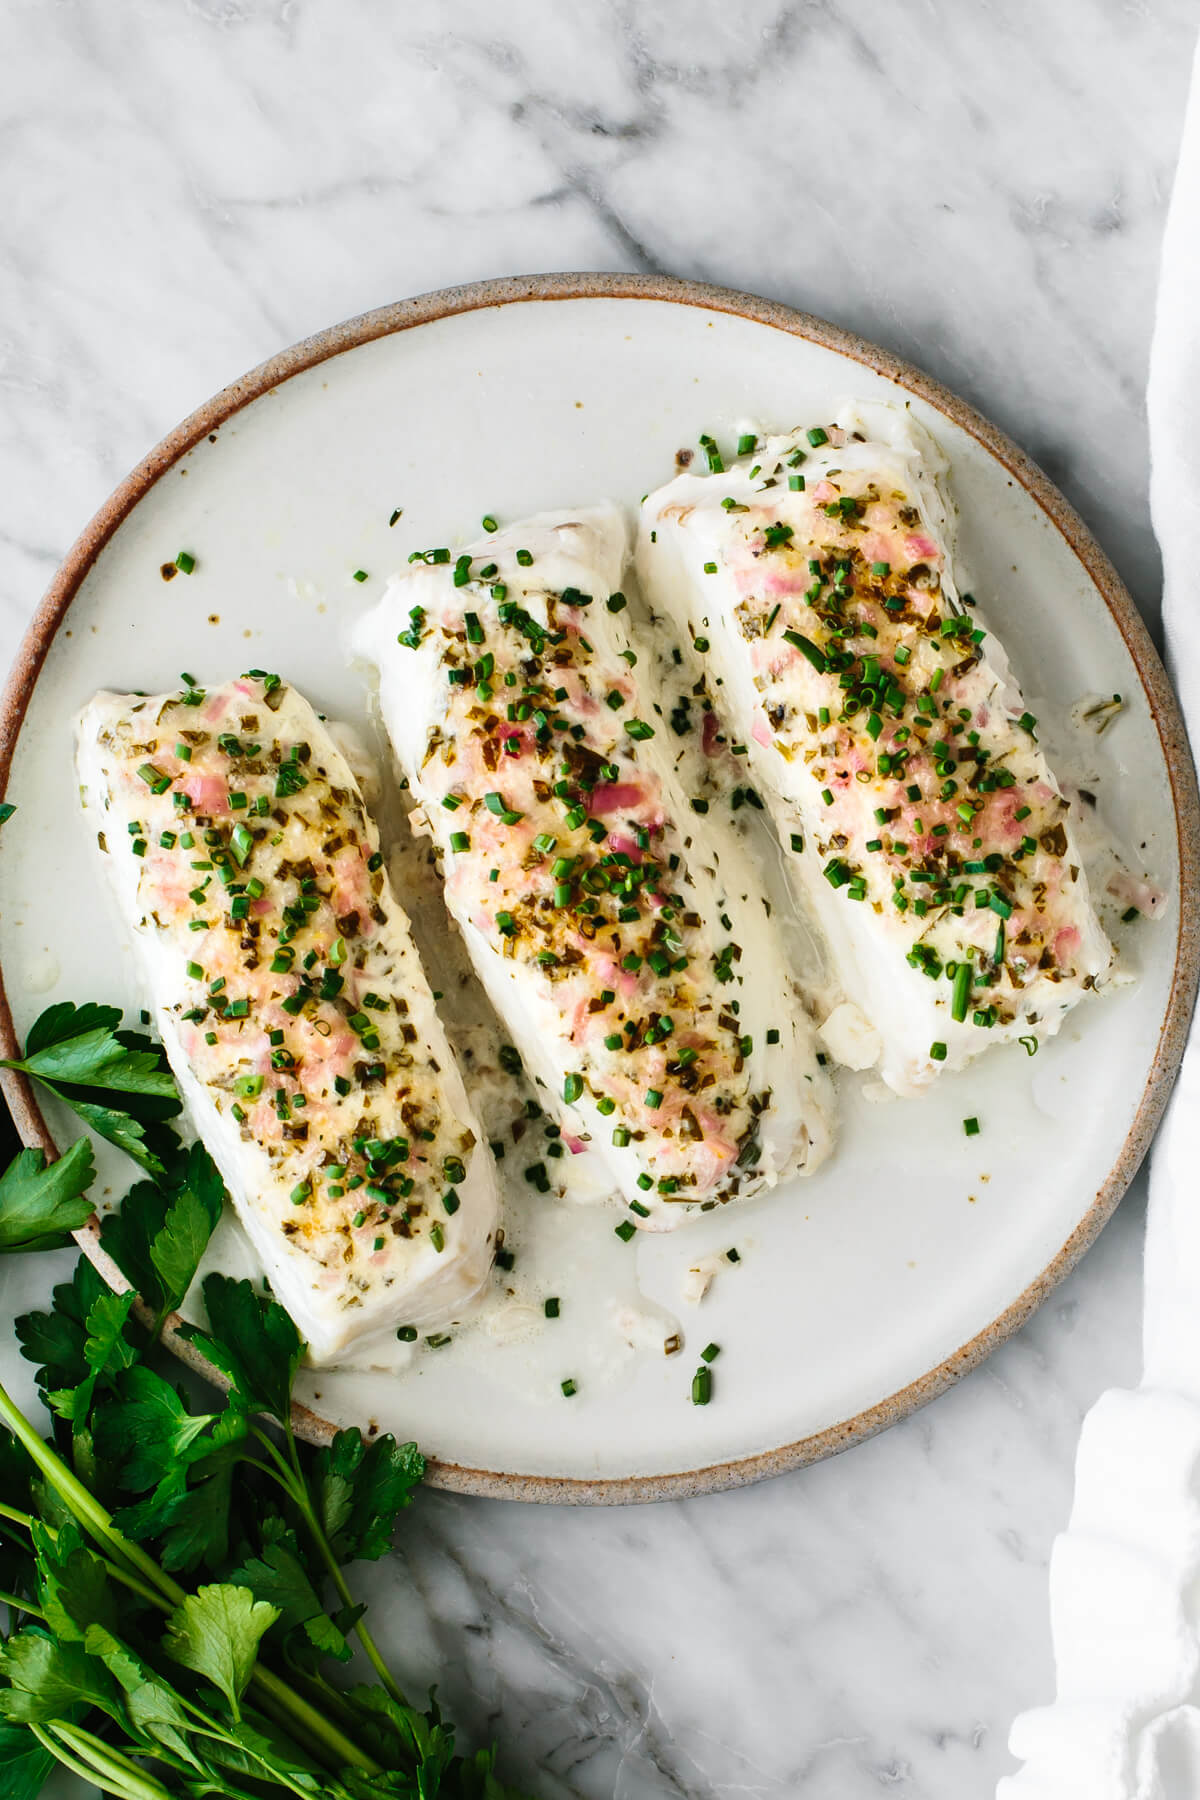 Baked halibut fillets on a plate next to cilantro